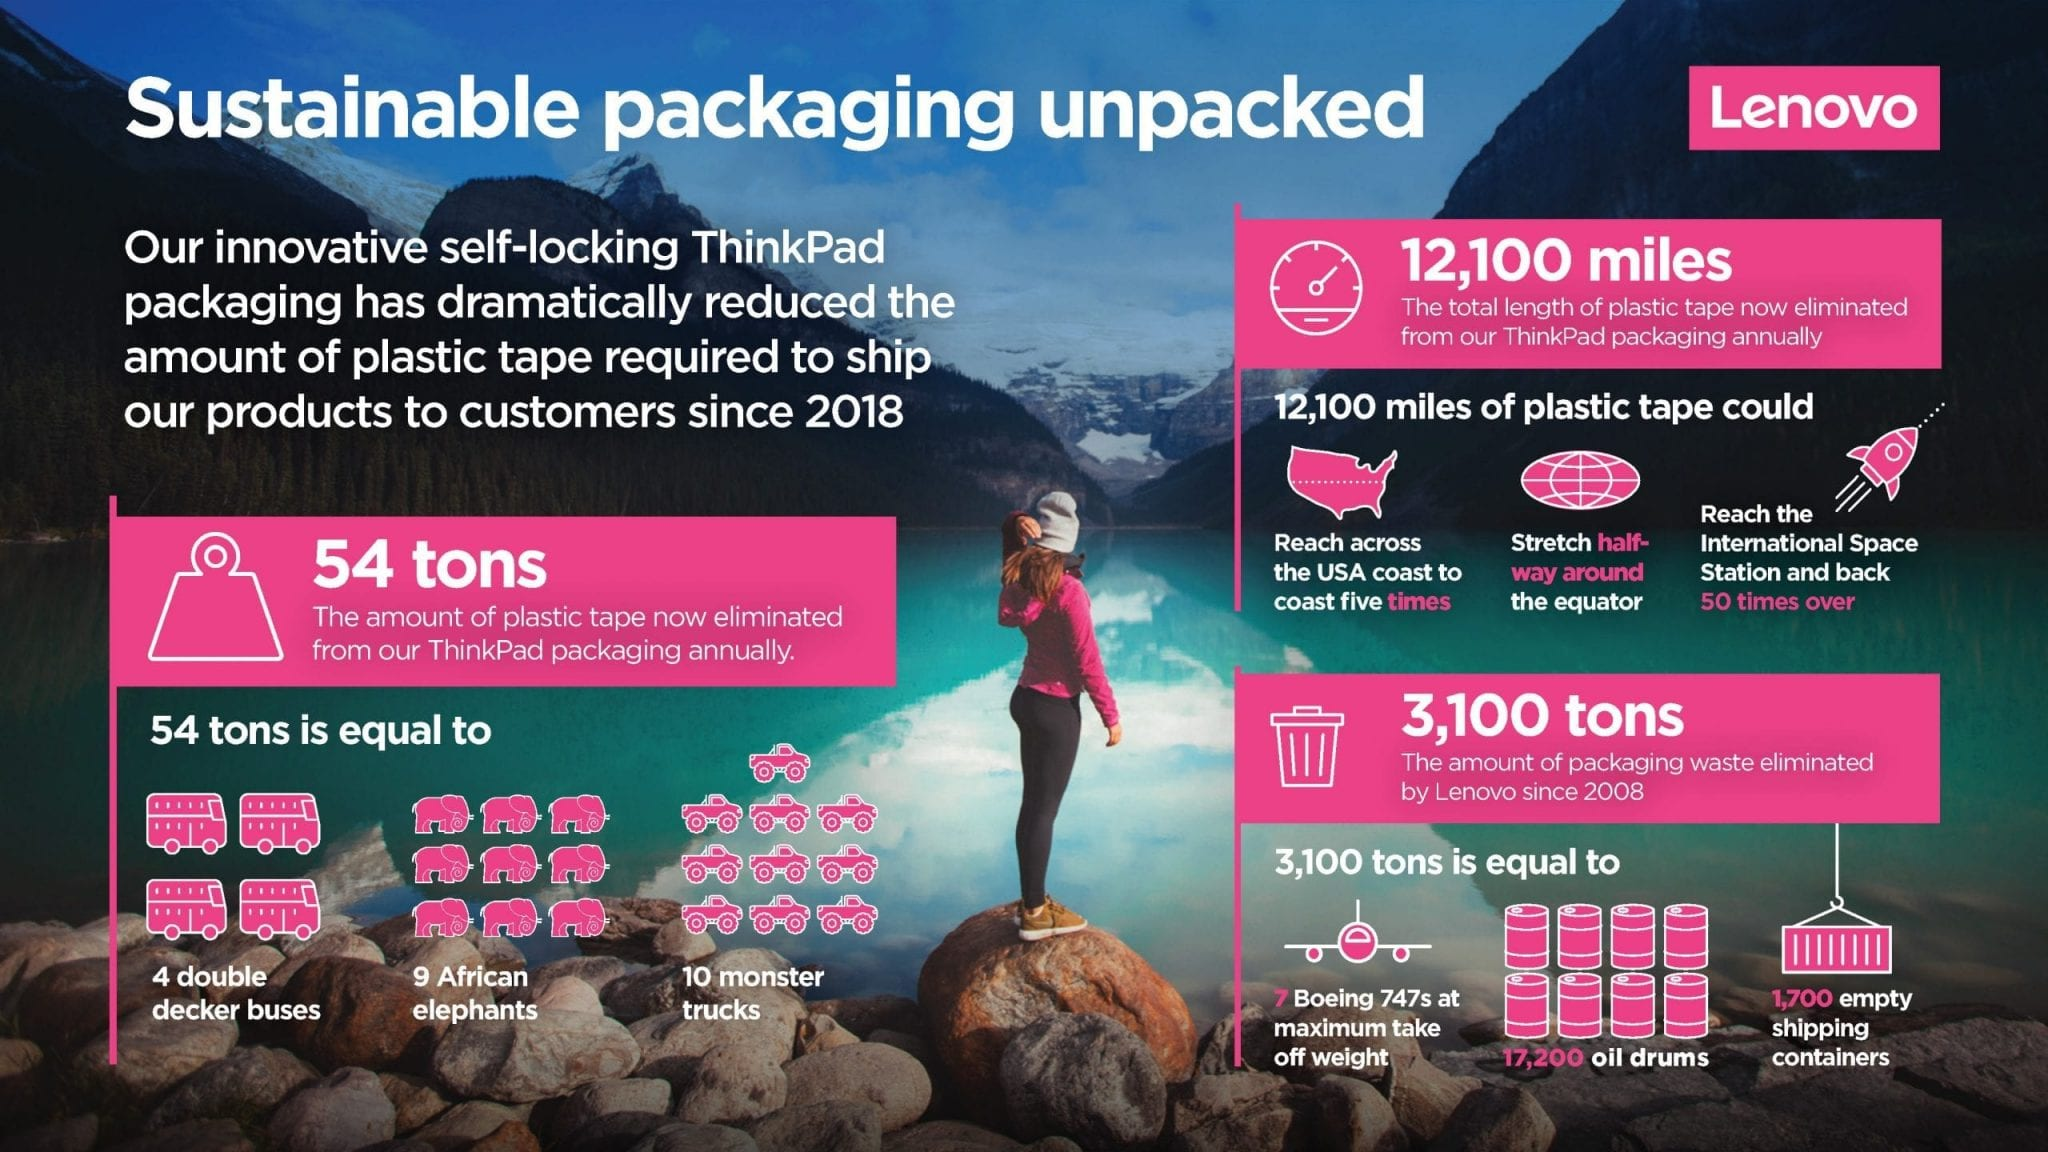 Infographic about Lenovo's sustainable packaging work